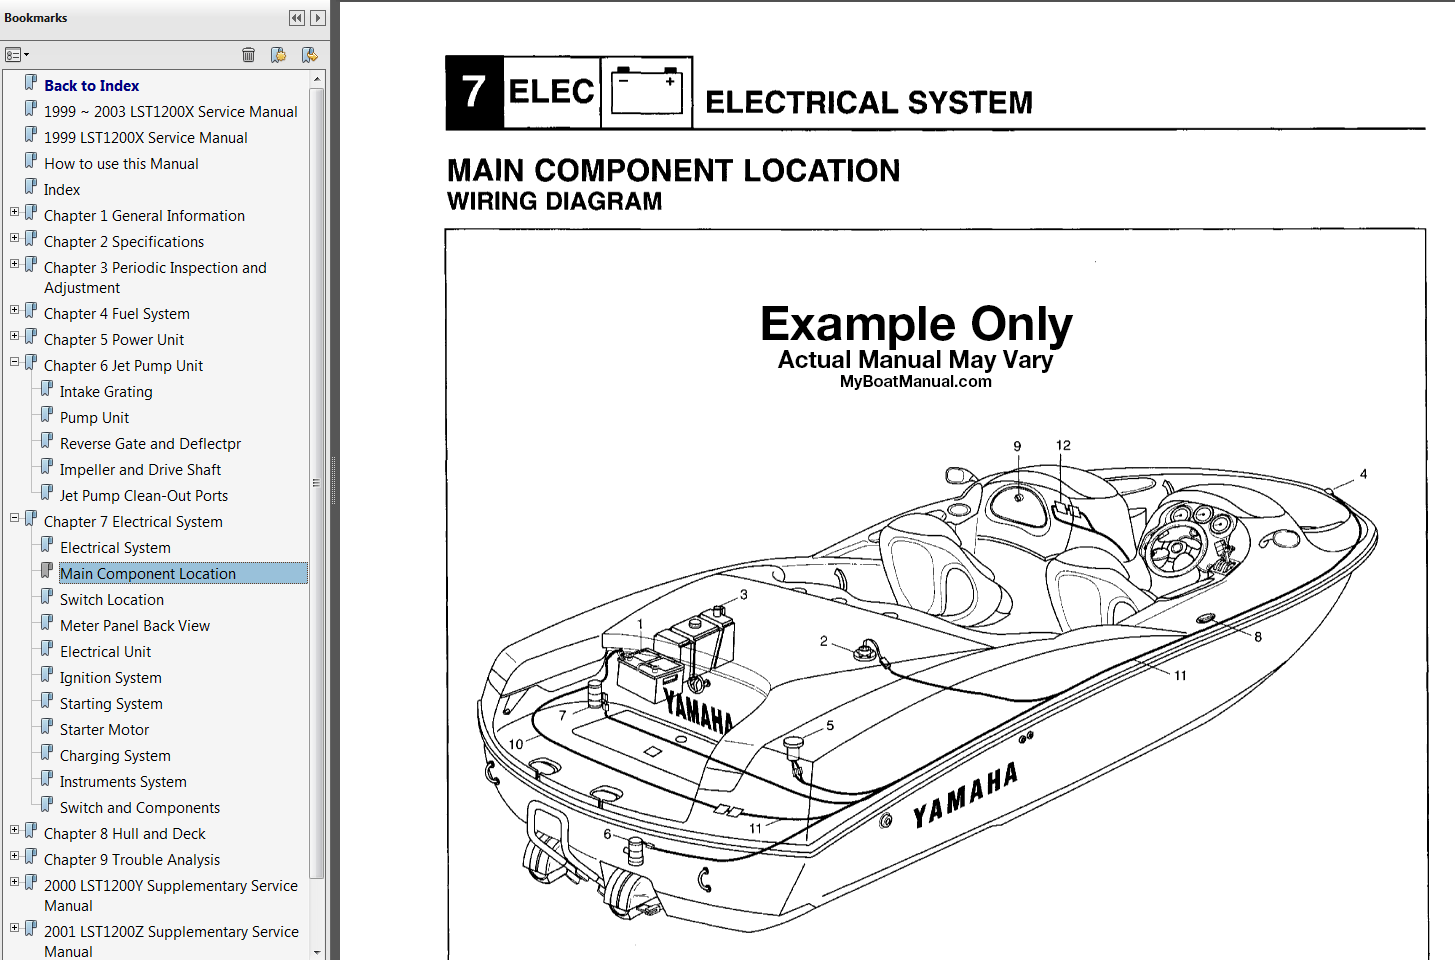 1996-1998 Yamaha Exciter 220 Jet Boat Service Manual